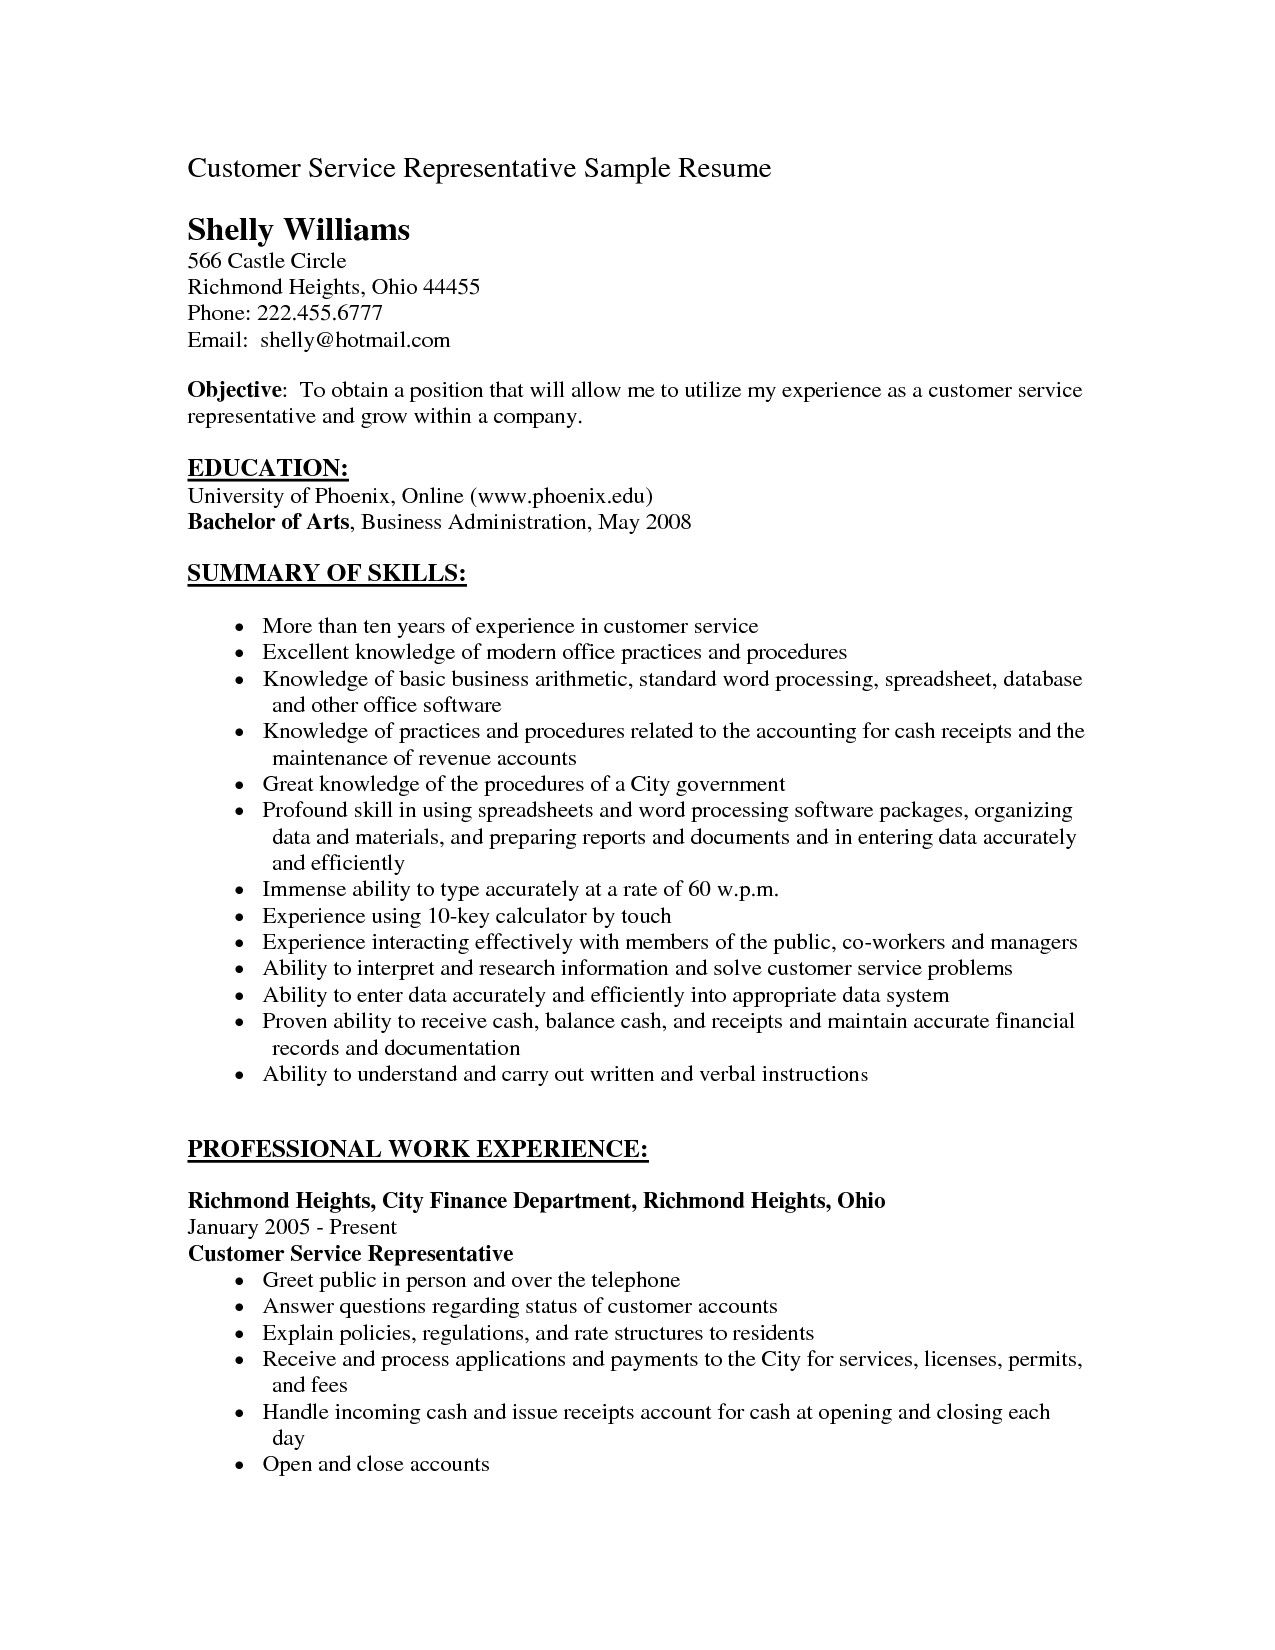 pin by sktrnhorn on resume letter ideas objective examples job customer service career Resume Career Objective For Resume Customer Service